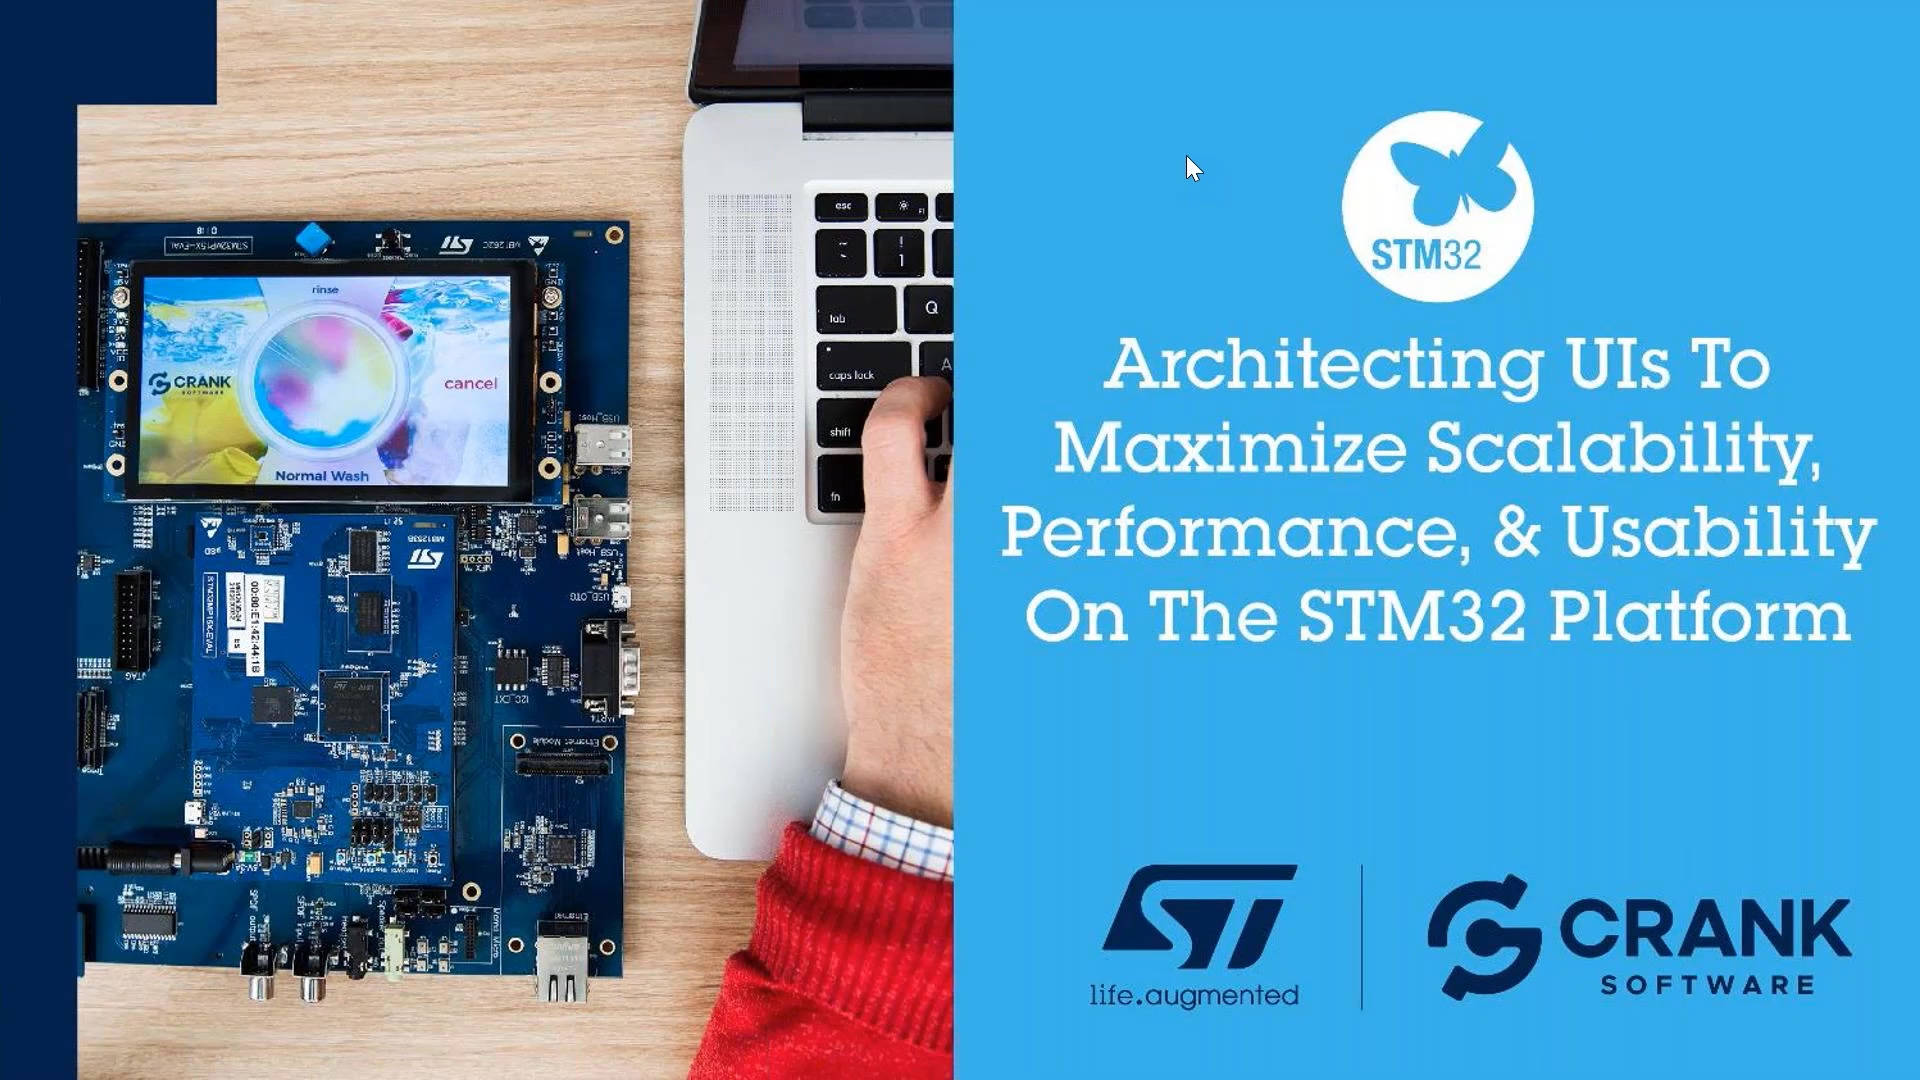 Architecting UIs for Scalability and Performance on STM32 Devices